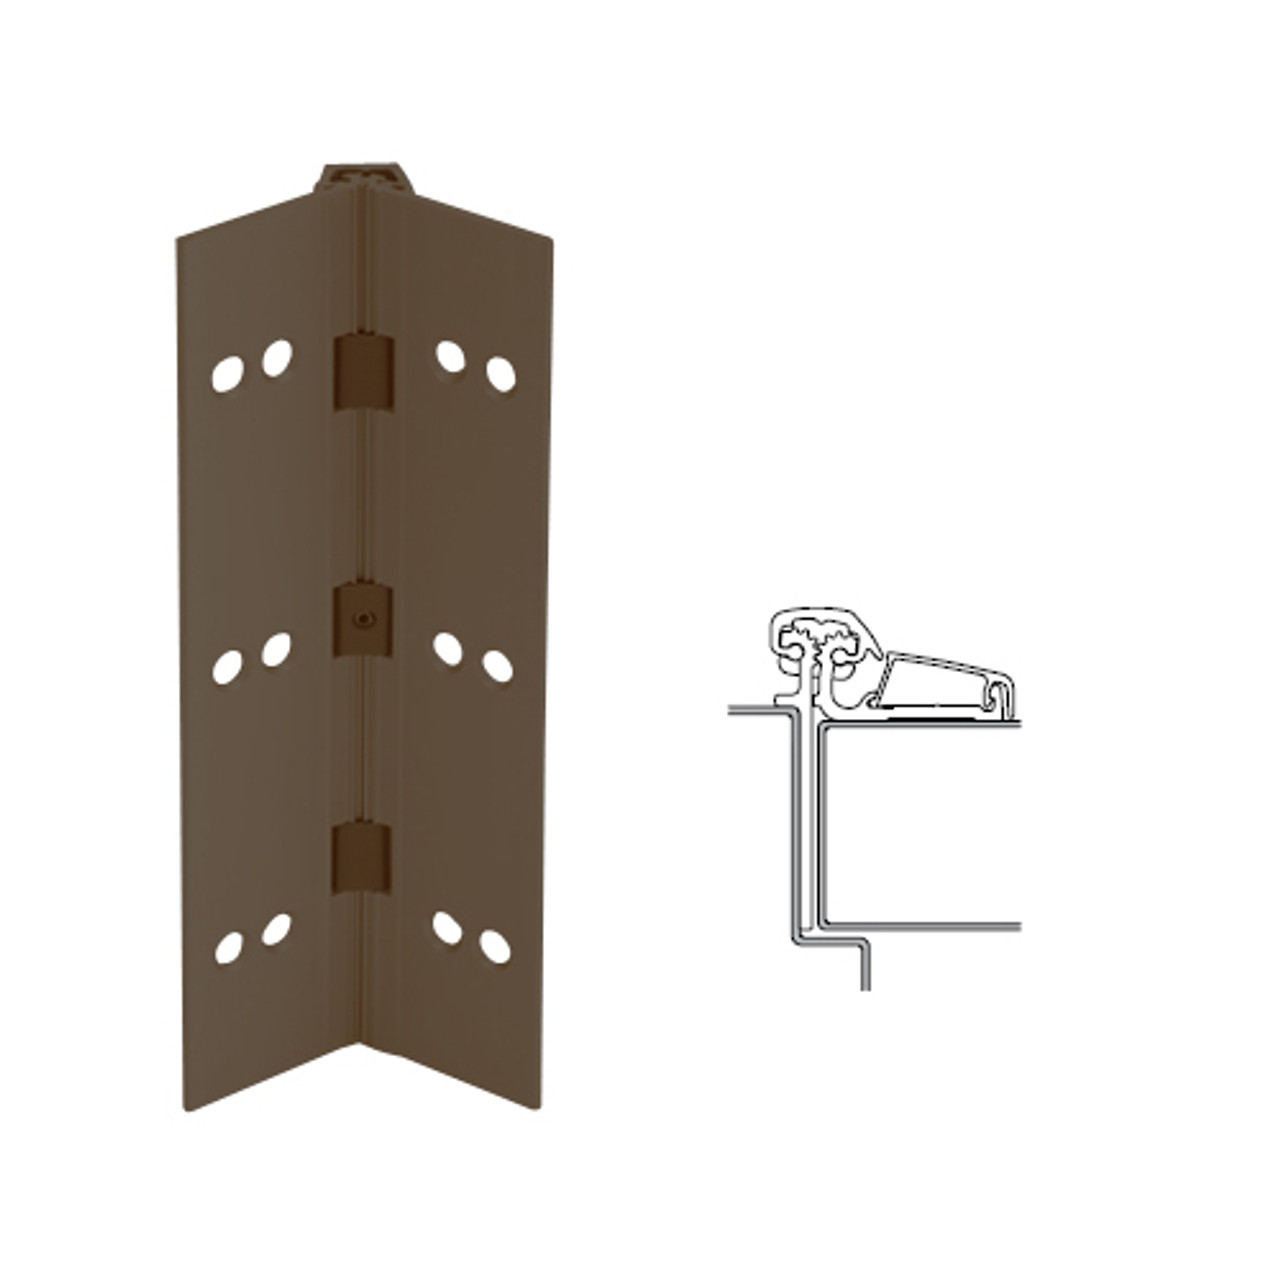 054XY-313AN-120-TFWD IVES Adjustable Half Surface Continuous Geared Hinges with Thread Forming Screws in Dark Bronze Anodized